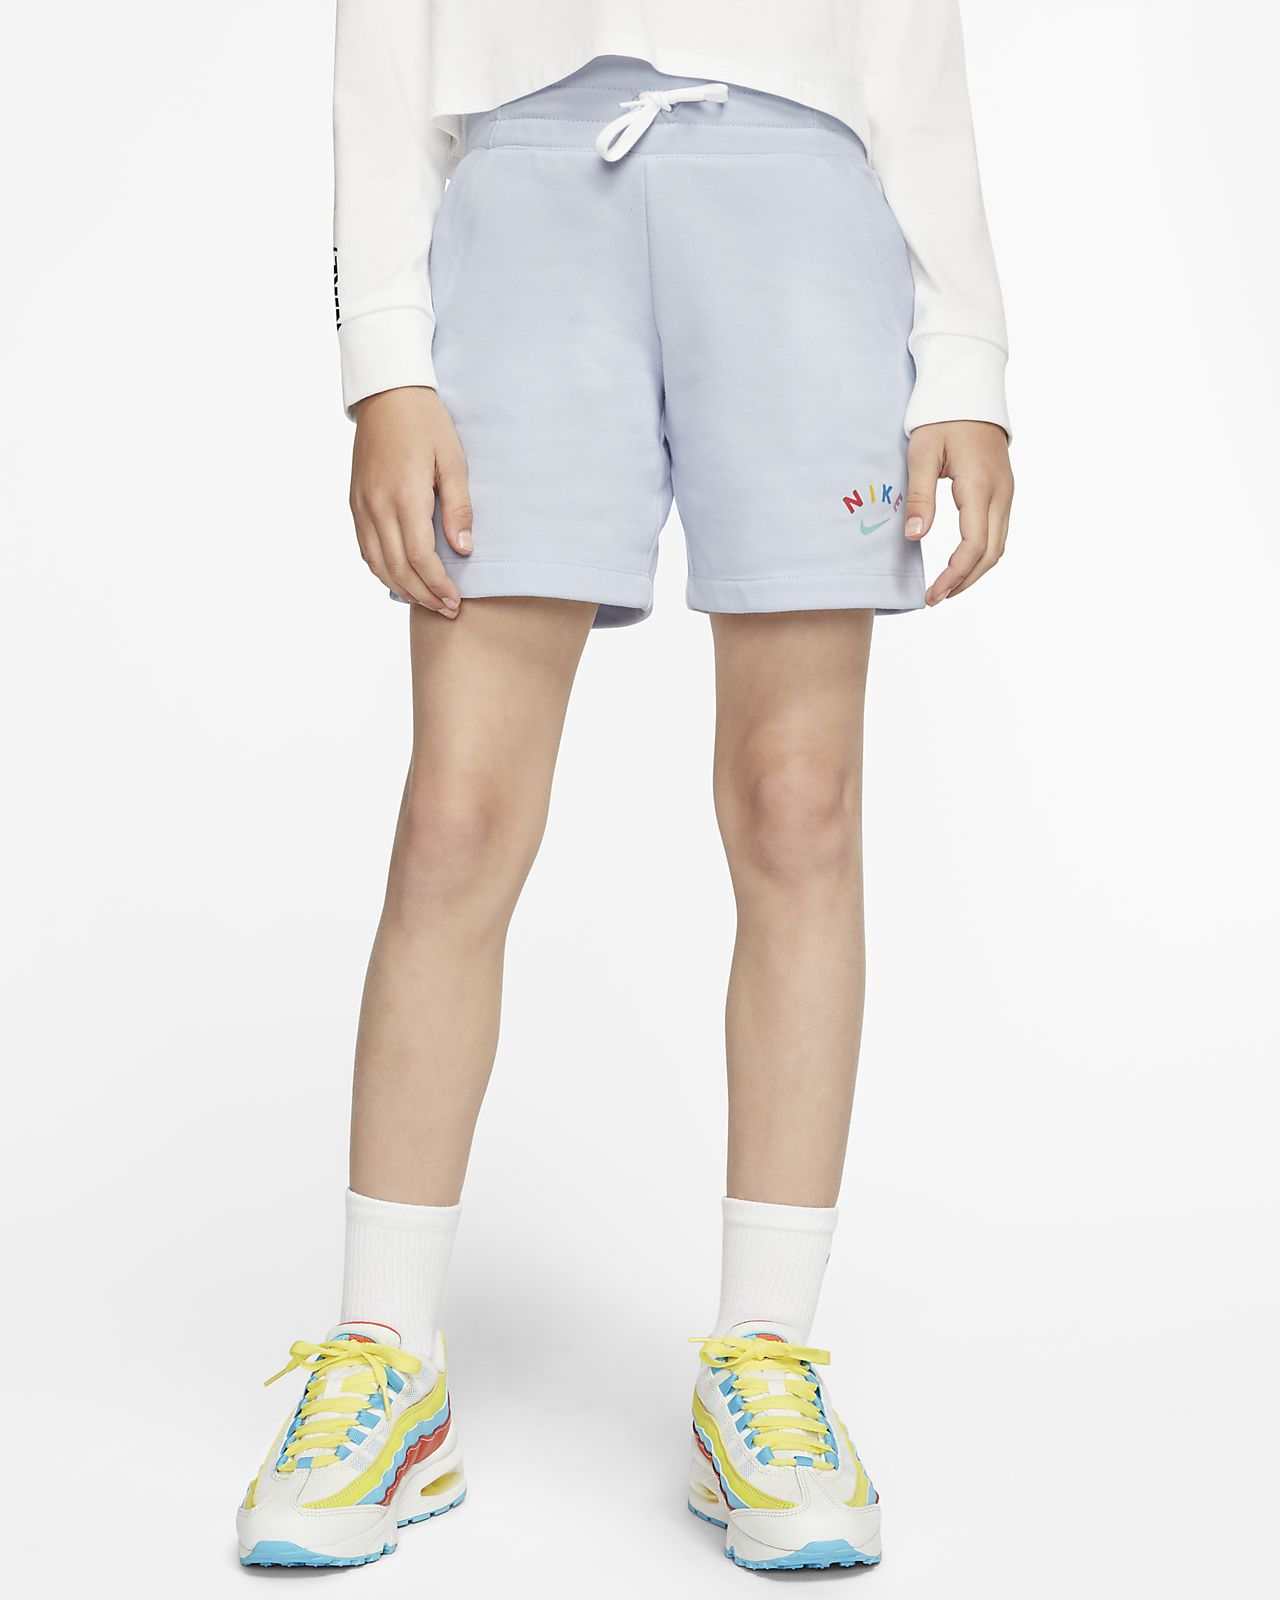 Nike Sportswear Older Kids' (Girls') Shorts